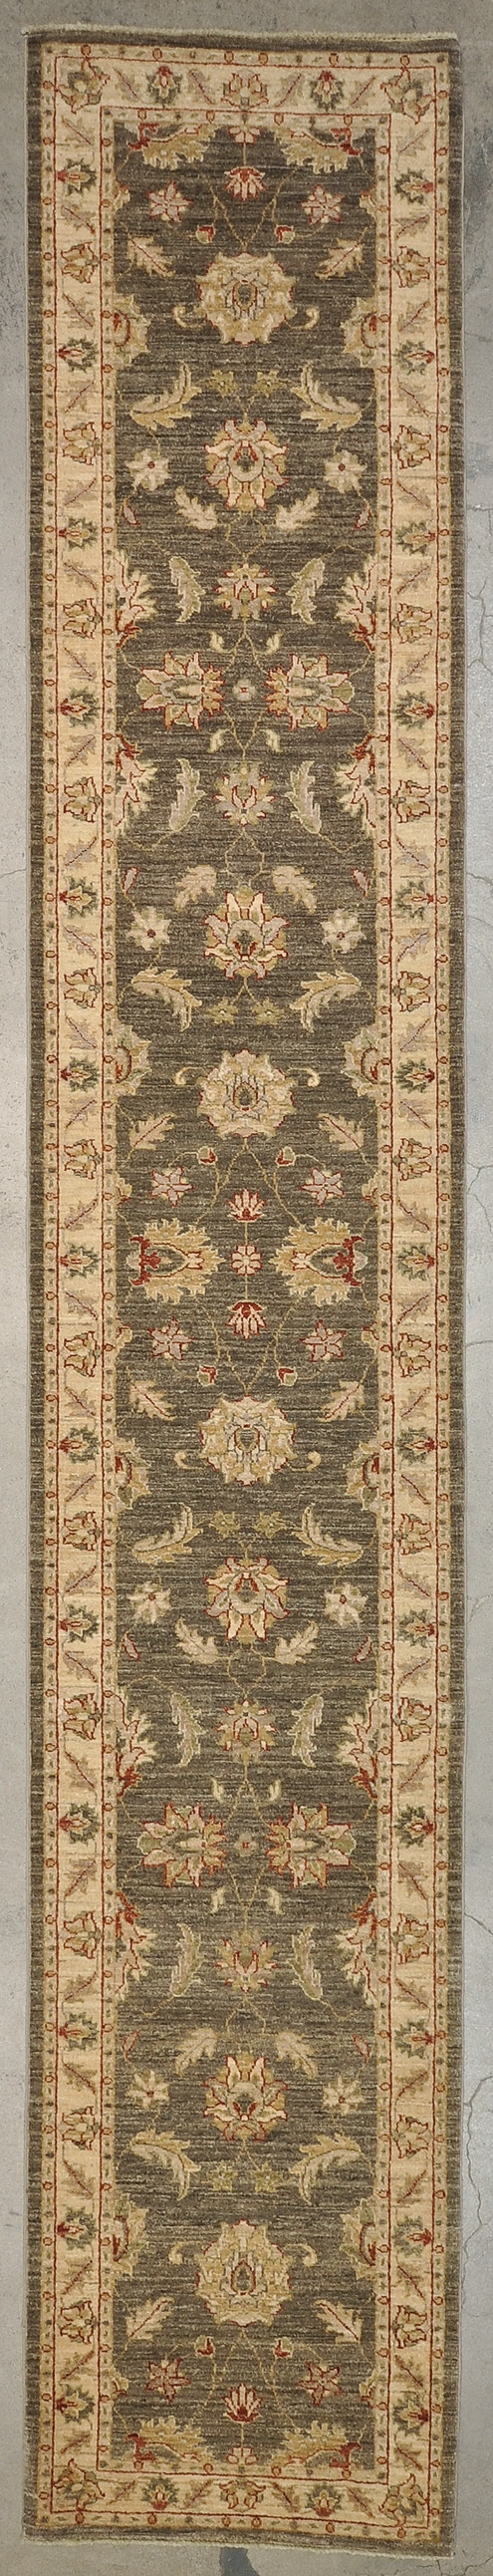 Fine Ziegler Usak Runner rugs and more oriental carpet 43903-